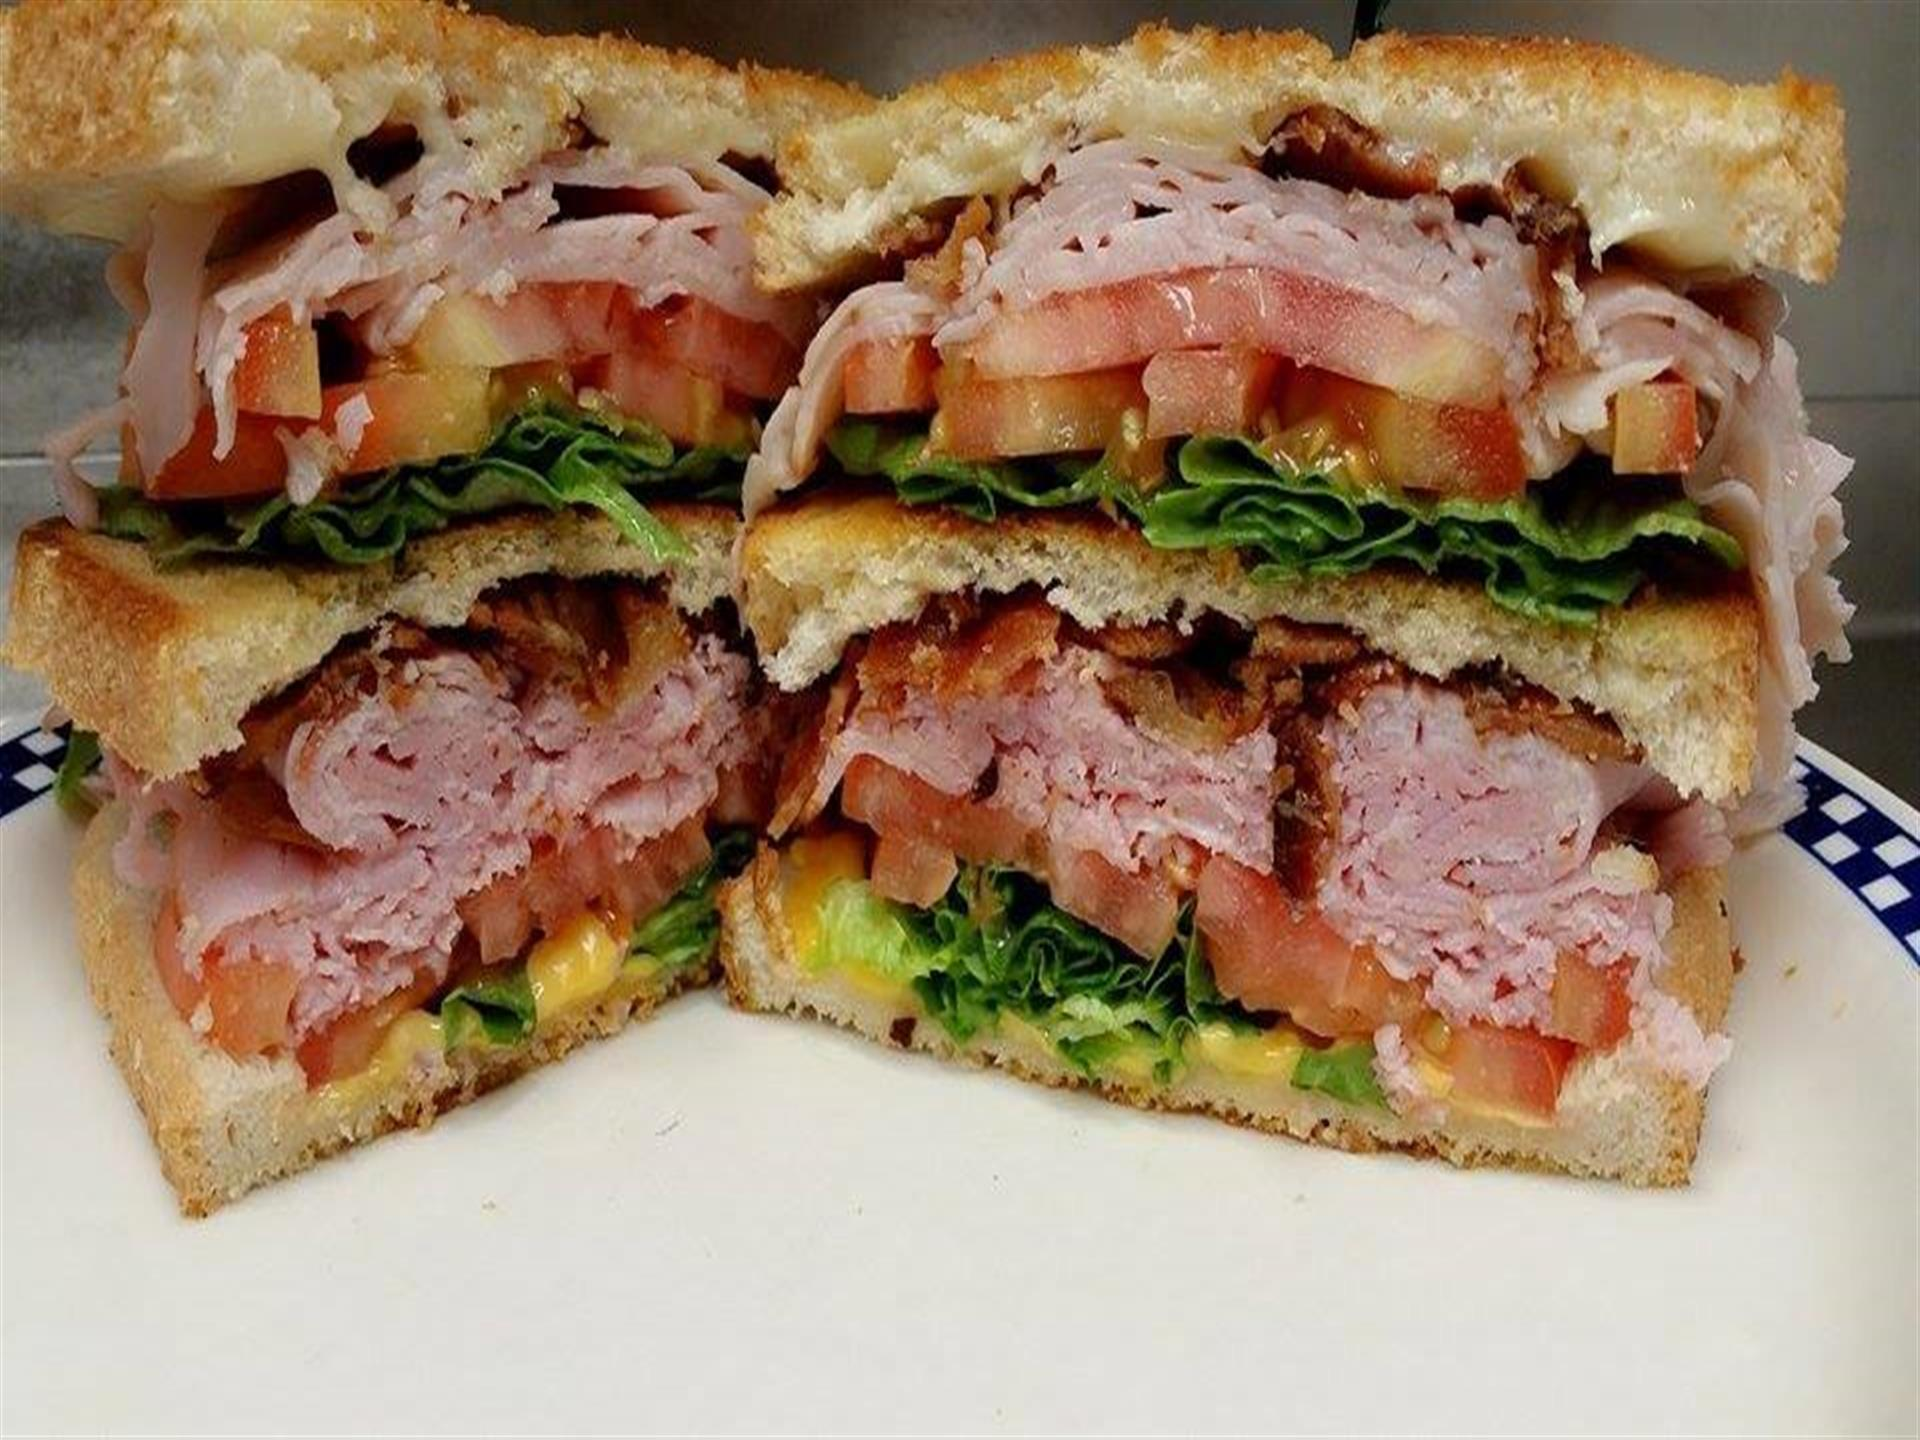 huge sandwich filled with meat, lettuce, tomatoes